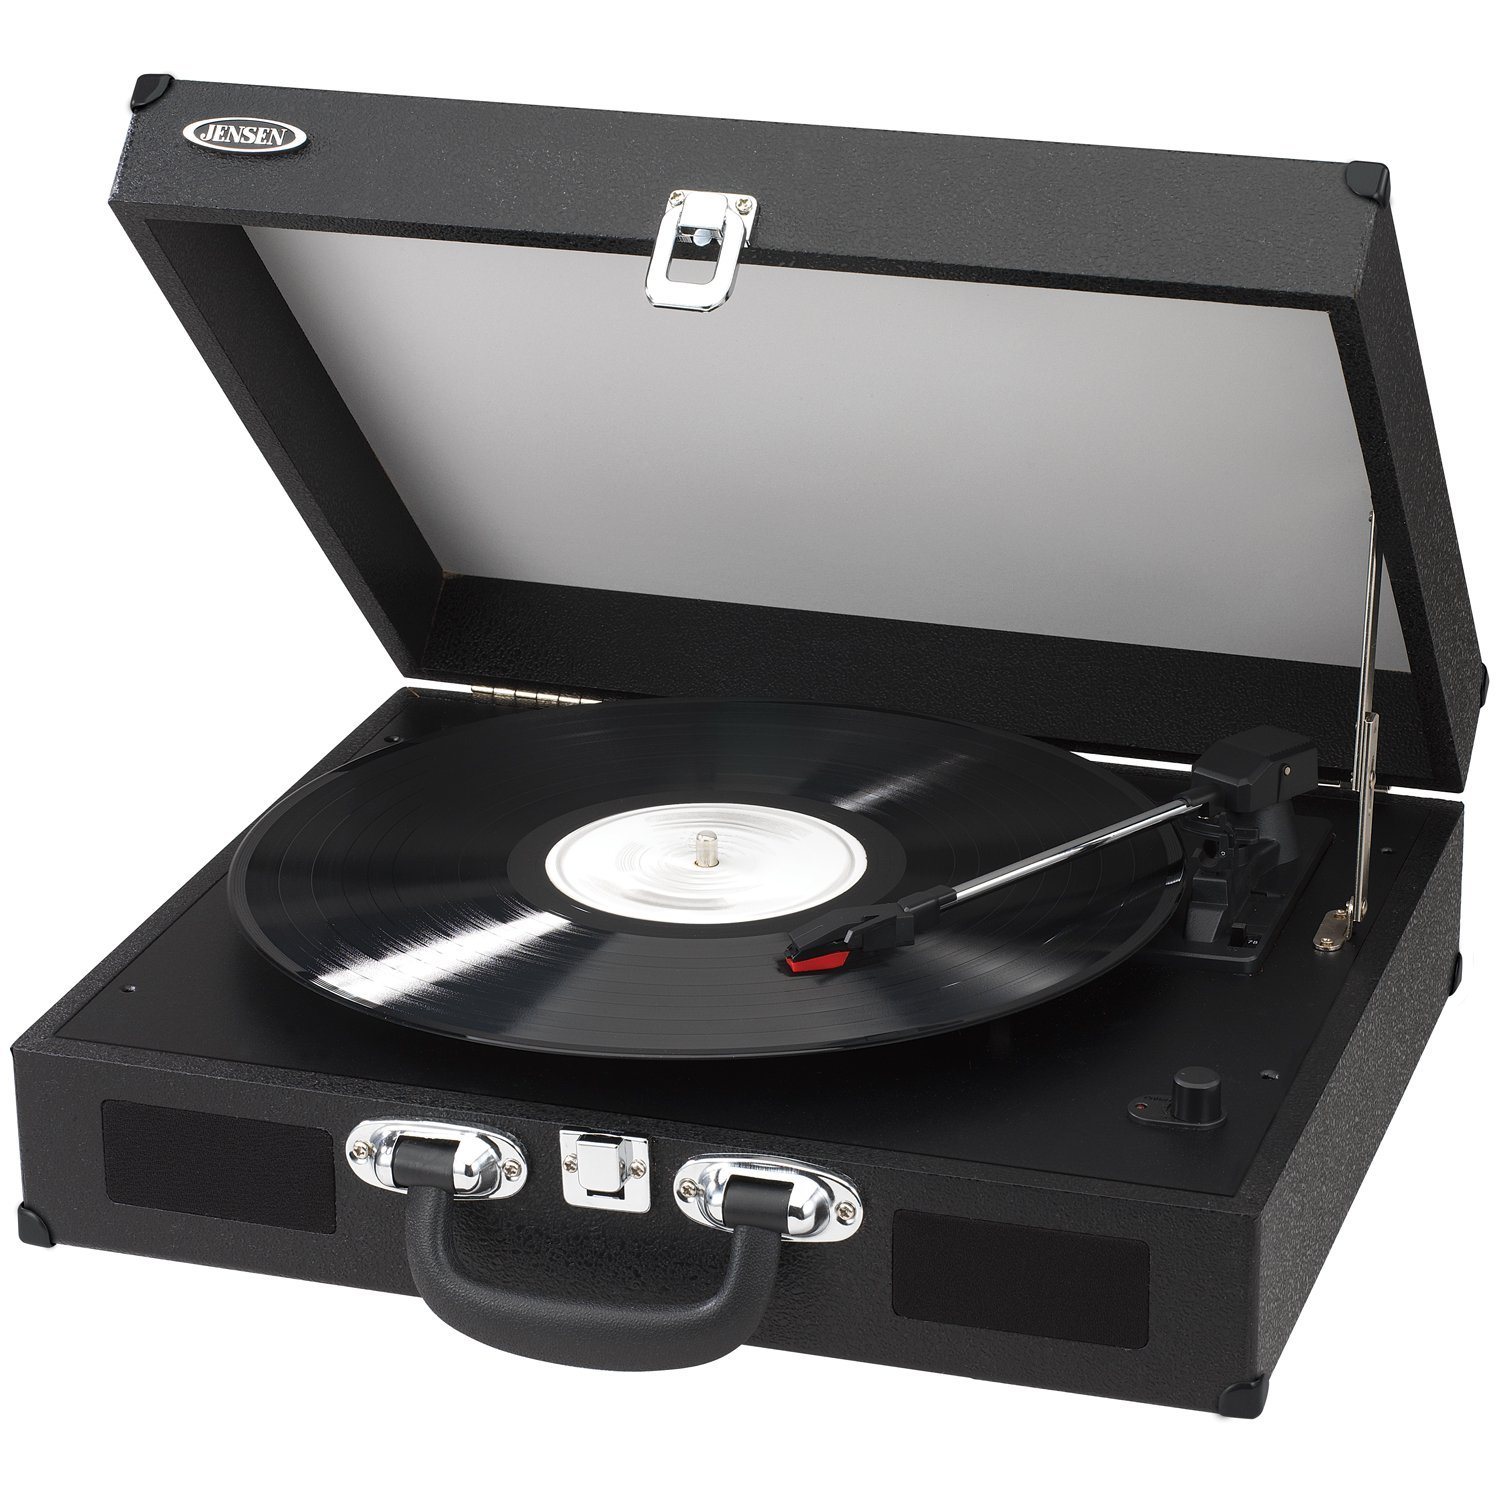 Jensen Portable 3-Speed Stereo Turntable with Built-In Speakers, Fully Automatic Return Tone Arm & Auxiliary Input Jack, USB Port with Cables, All Software for Recording Included